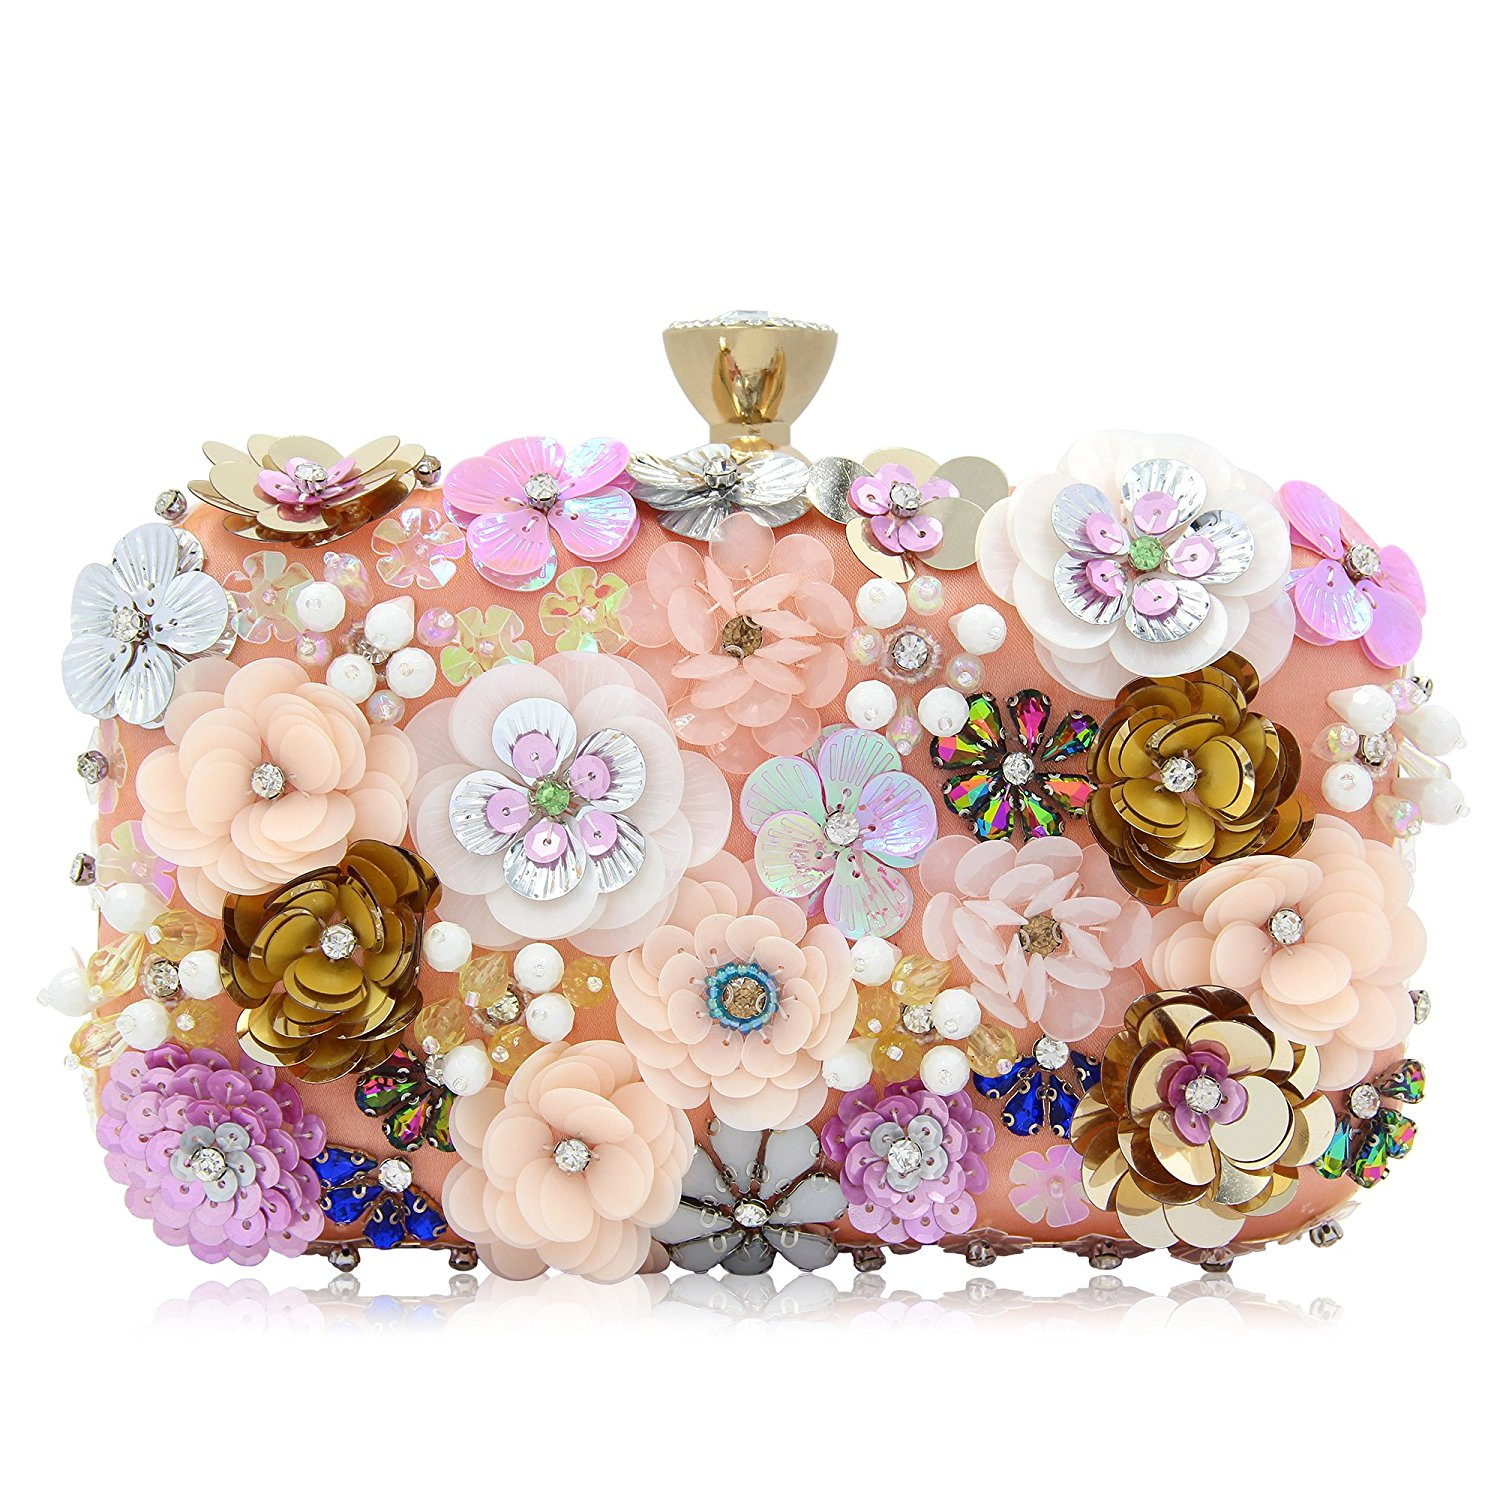 FGGS Women Clutches Colorful Flower Evening Bag Sequins Satin Evening ClutchFGGS Women Clutches Colorful Flower Evening Bag Sequins Satin Evening Clutch